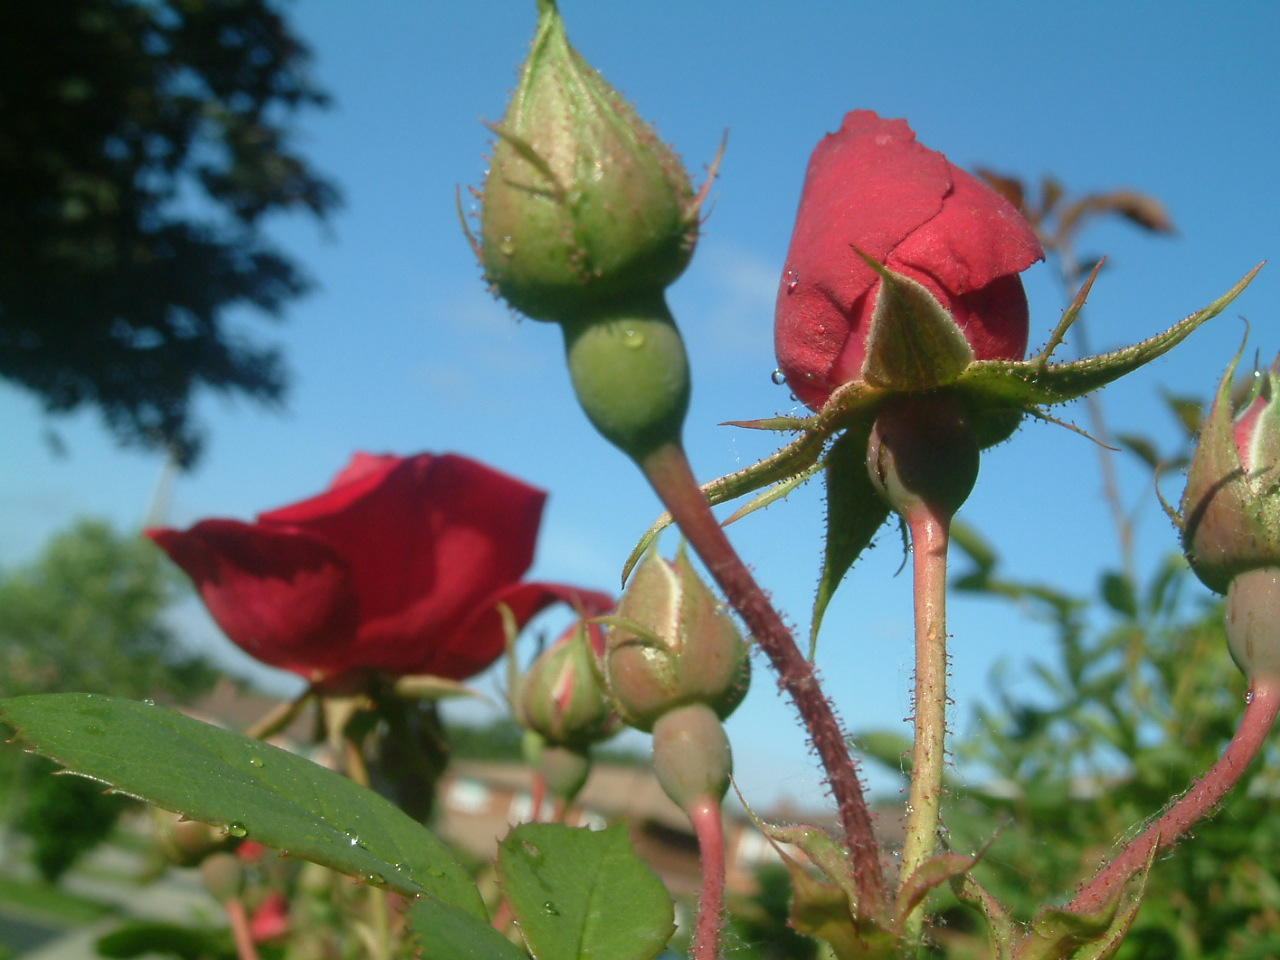 Rose Bud in the Sky